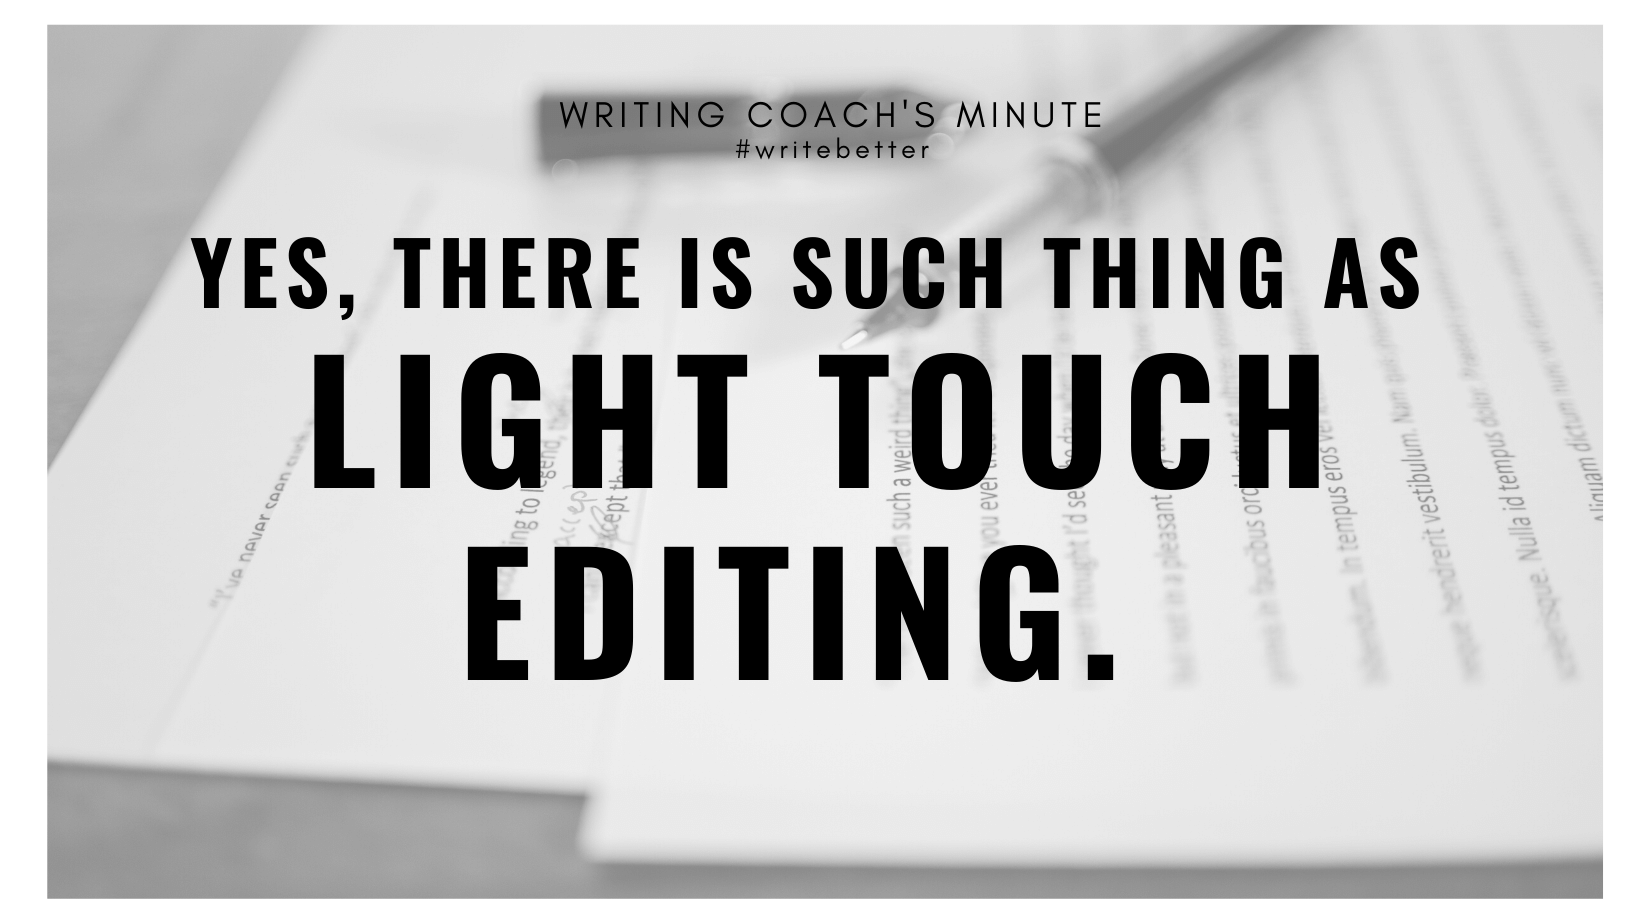 Light Touch Editing by a Professional Book Editor